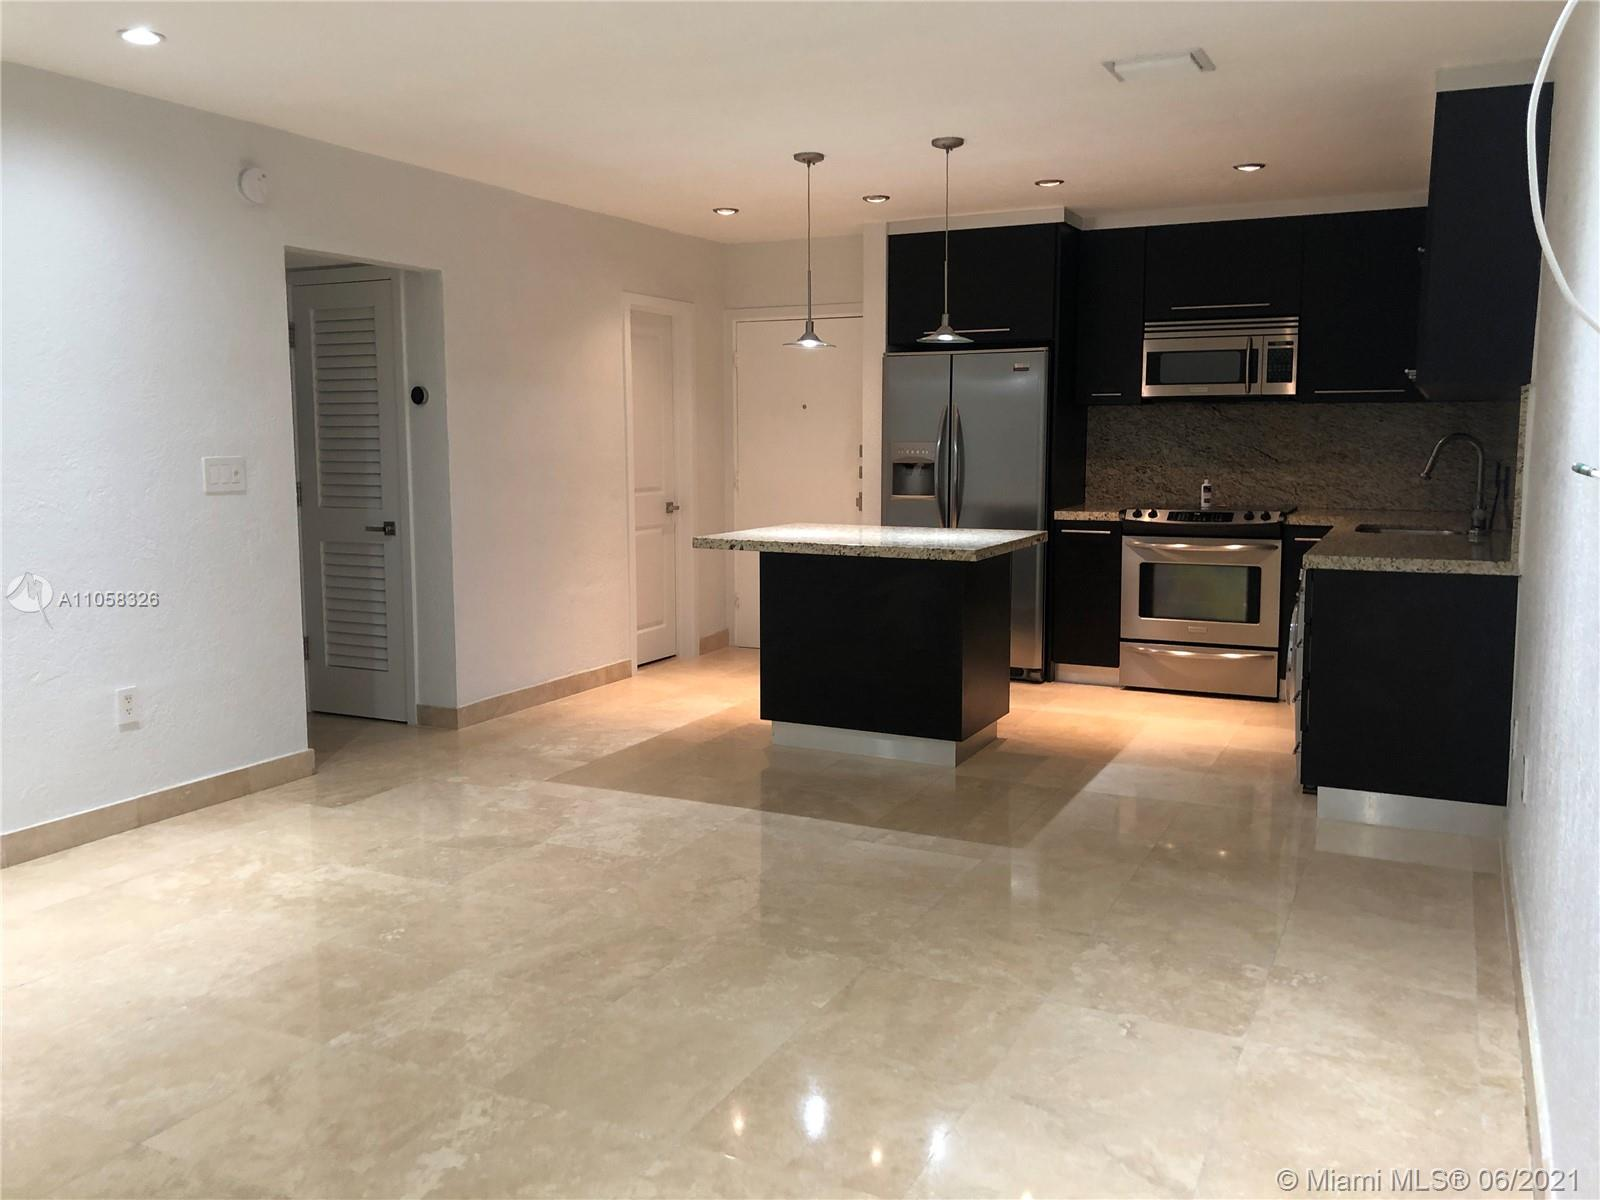 7401 SW 82nd St #302S For Sale A11058326, FL